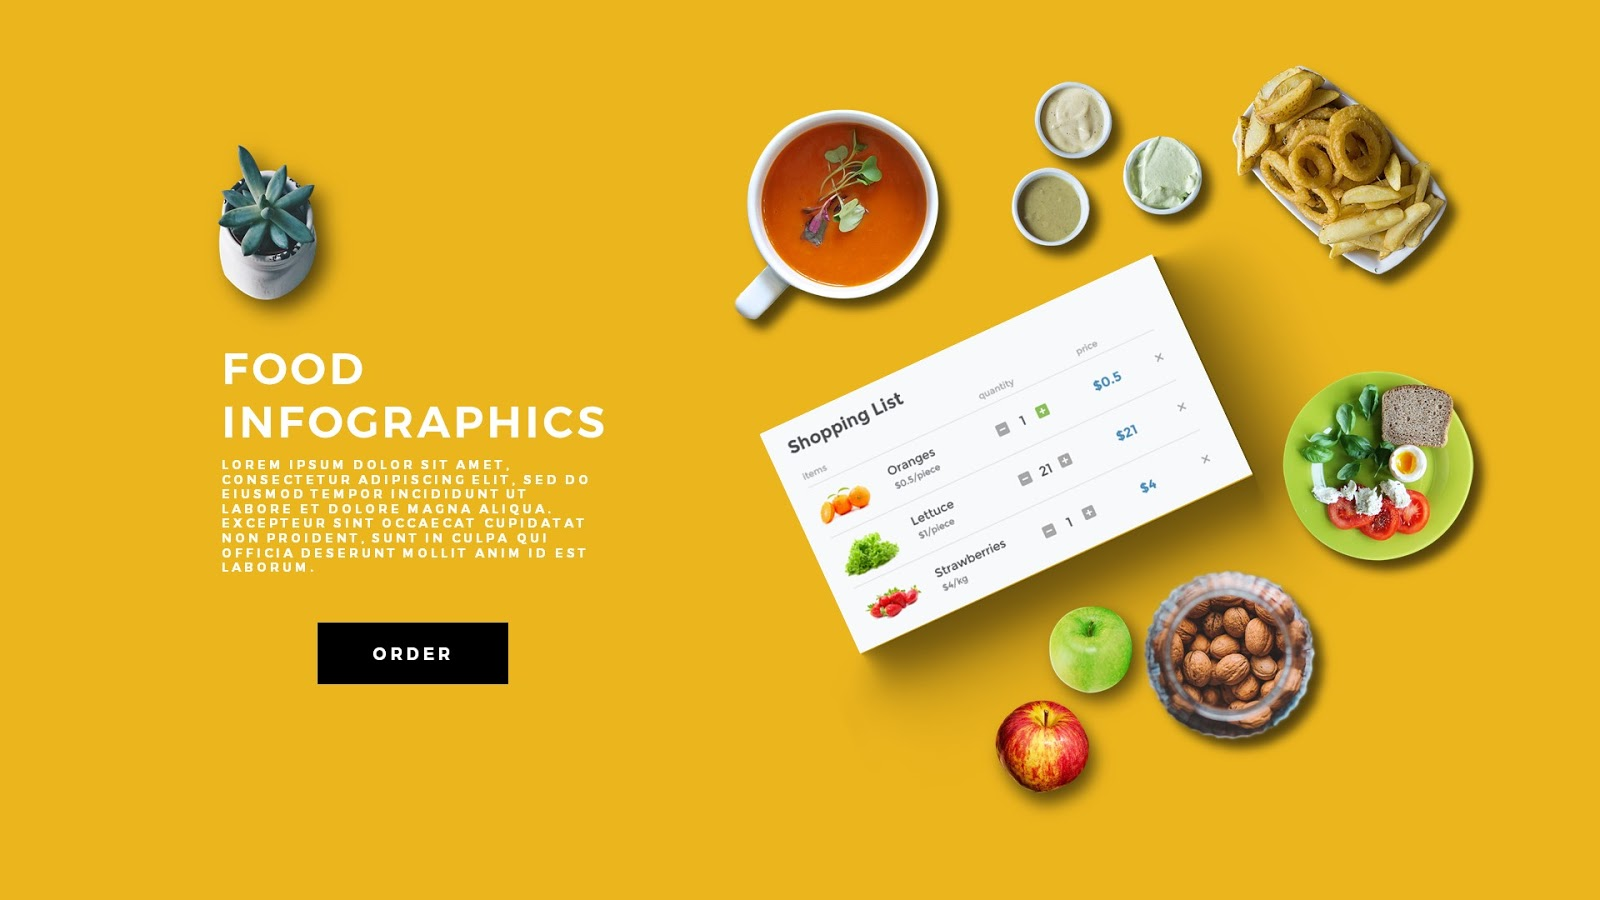 Food Scene Generating PowerPoint Template - Infographicon